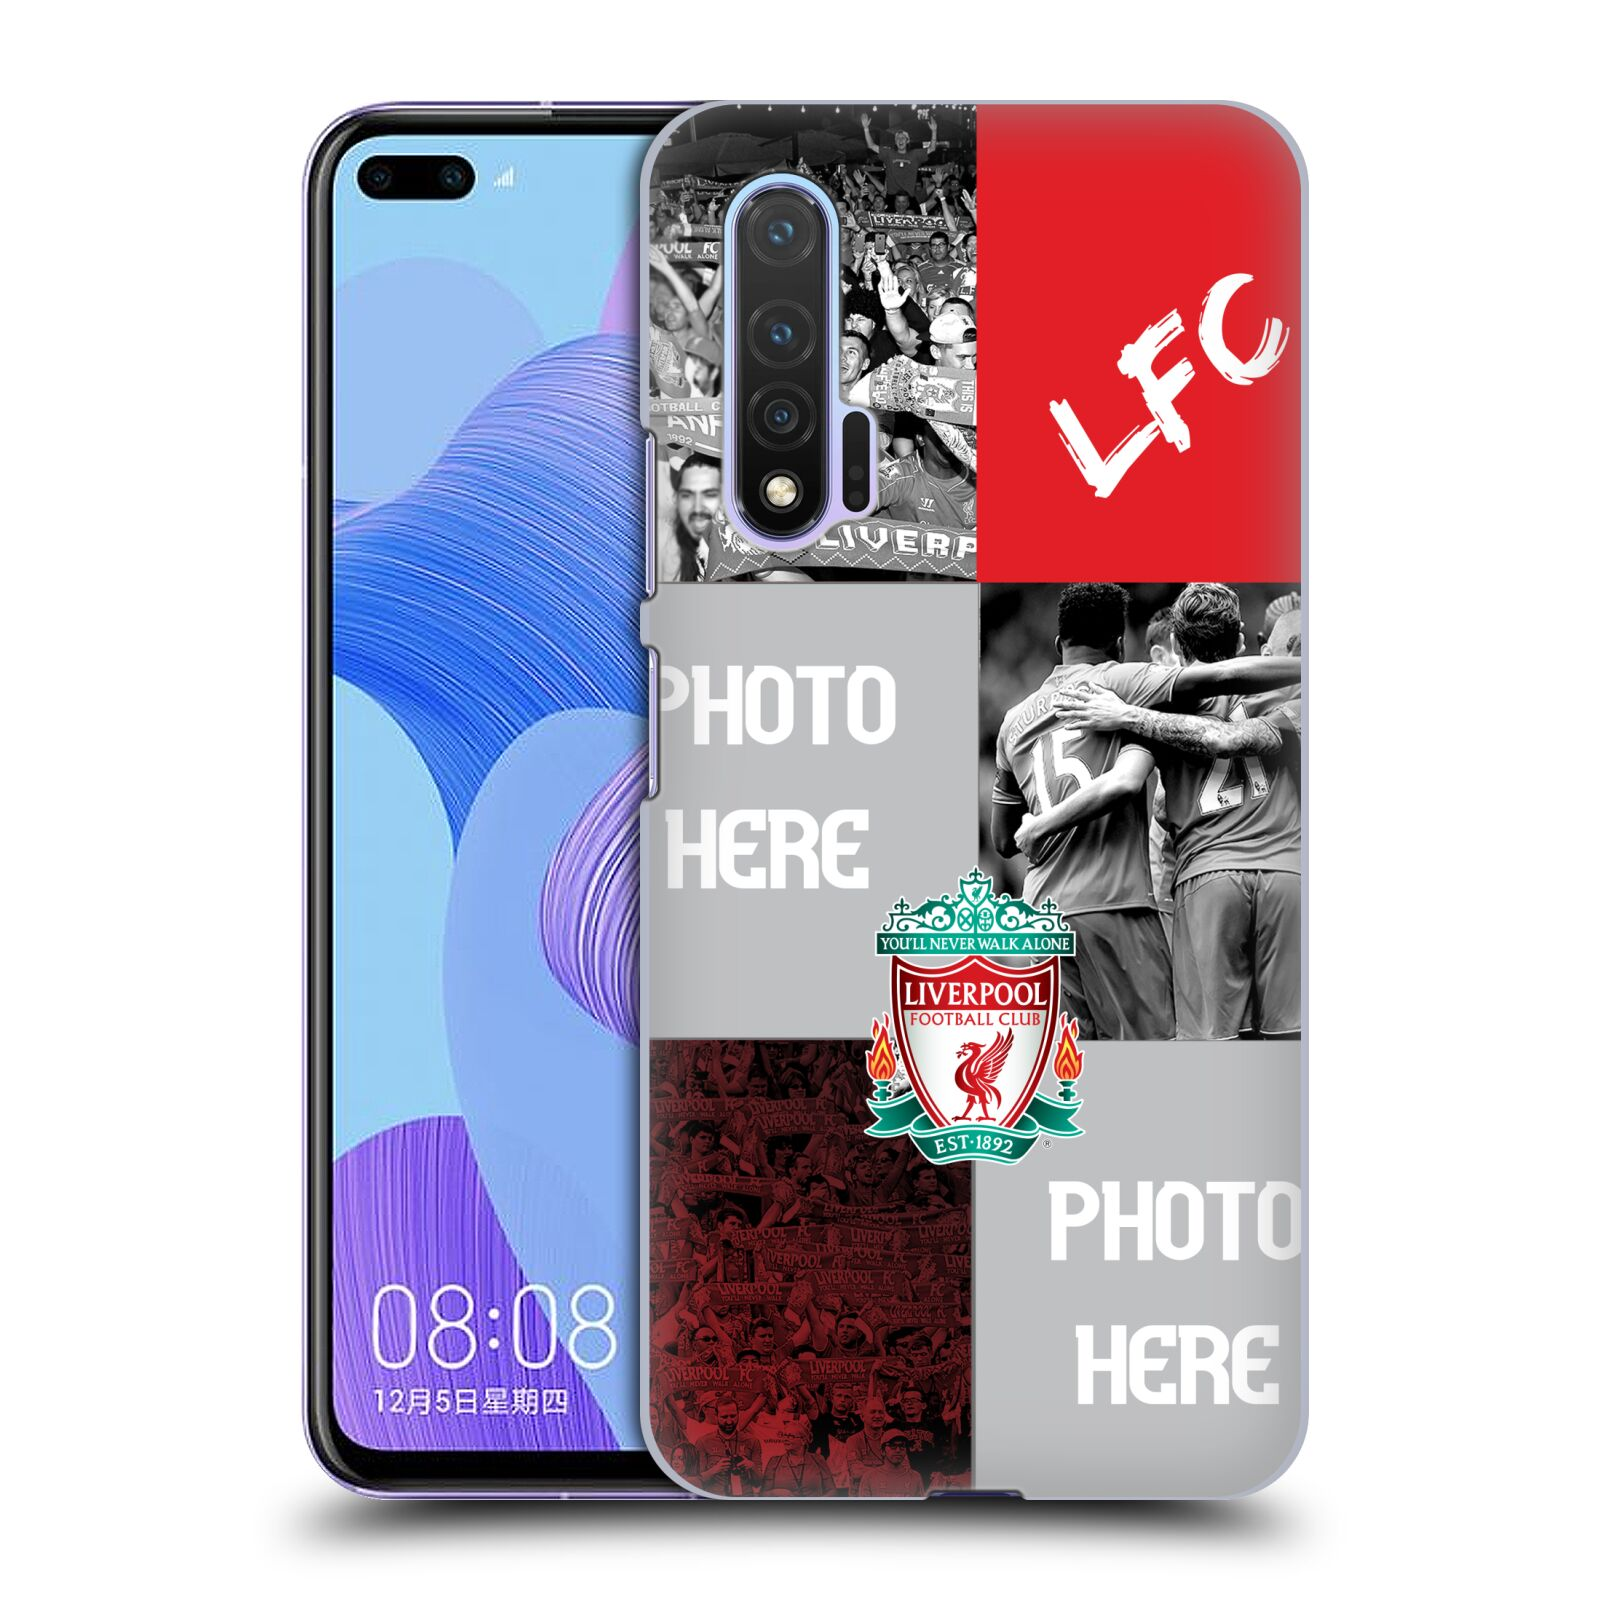 Custom Customised Personalised Liverpool Football Club Liverpool Fc Celebration Crest Case for Huawei Nova 6 5G